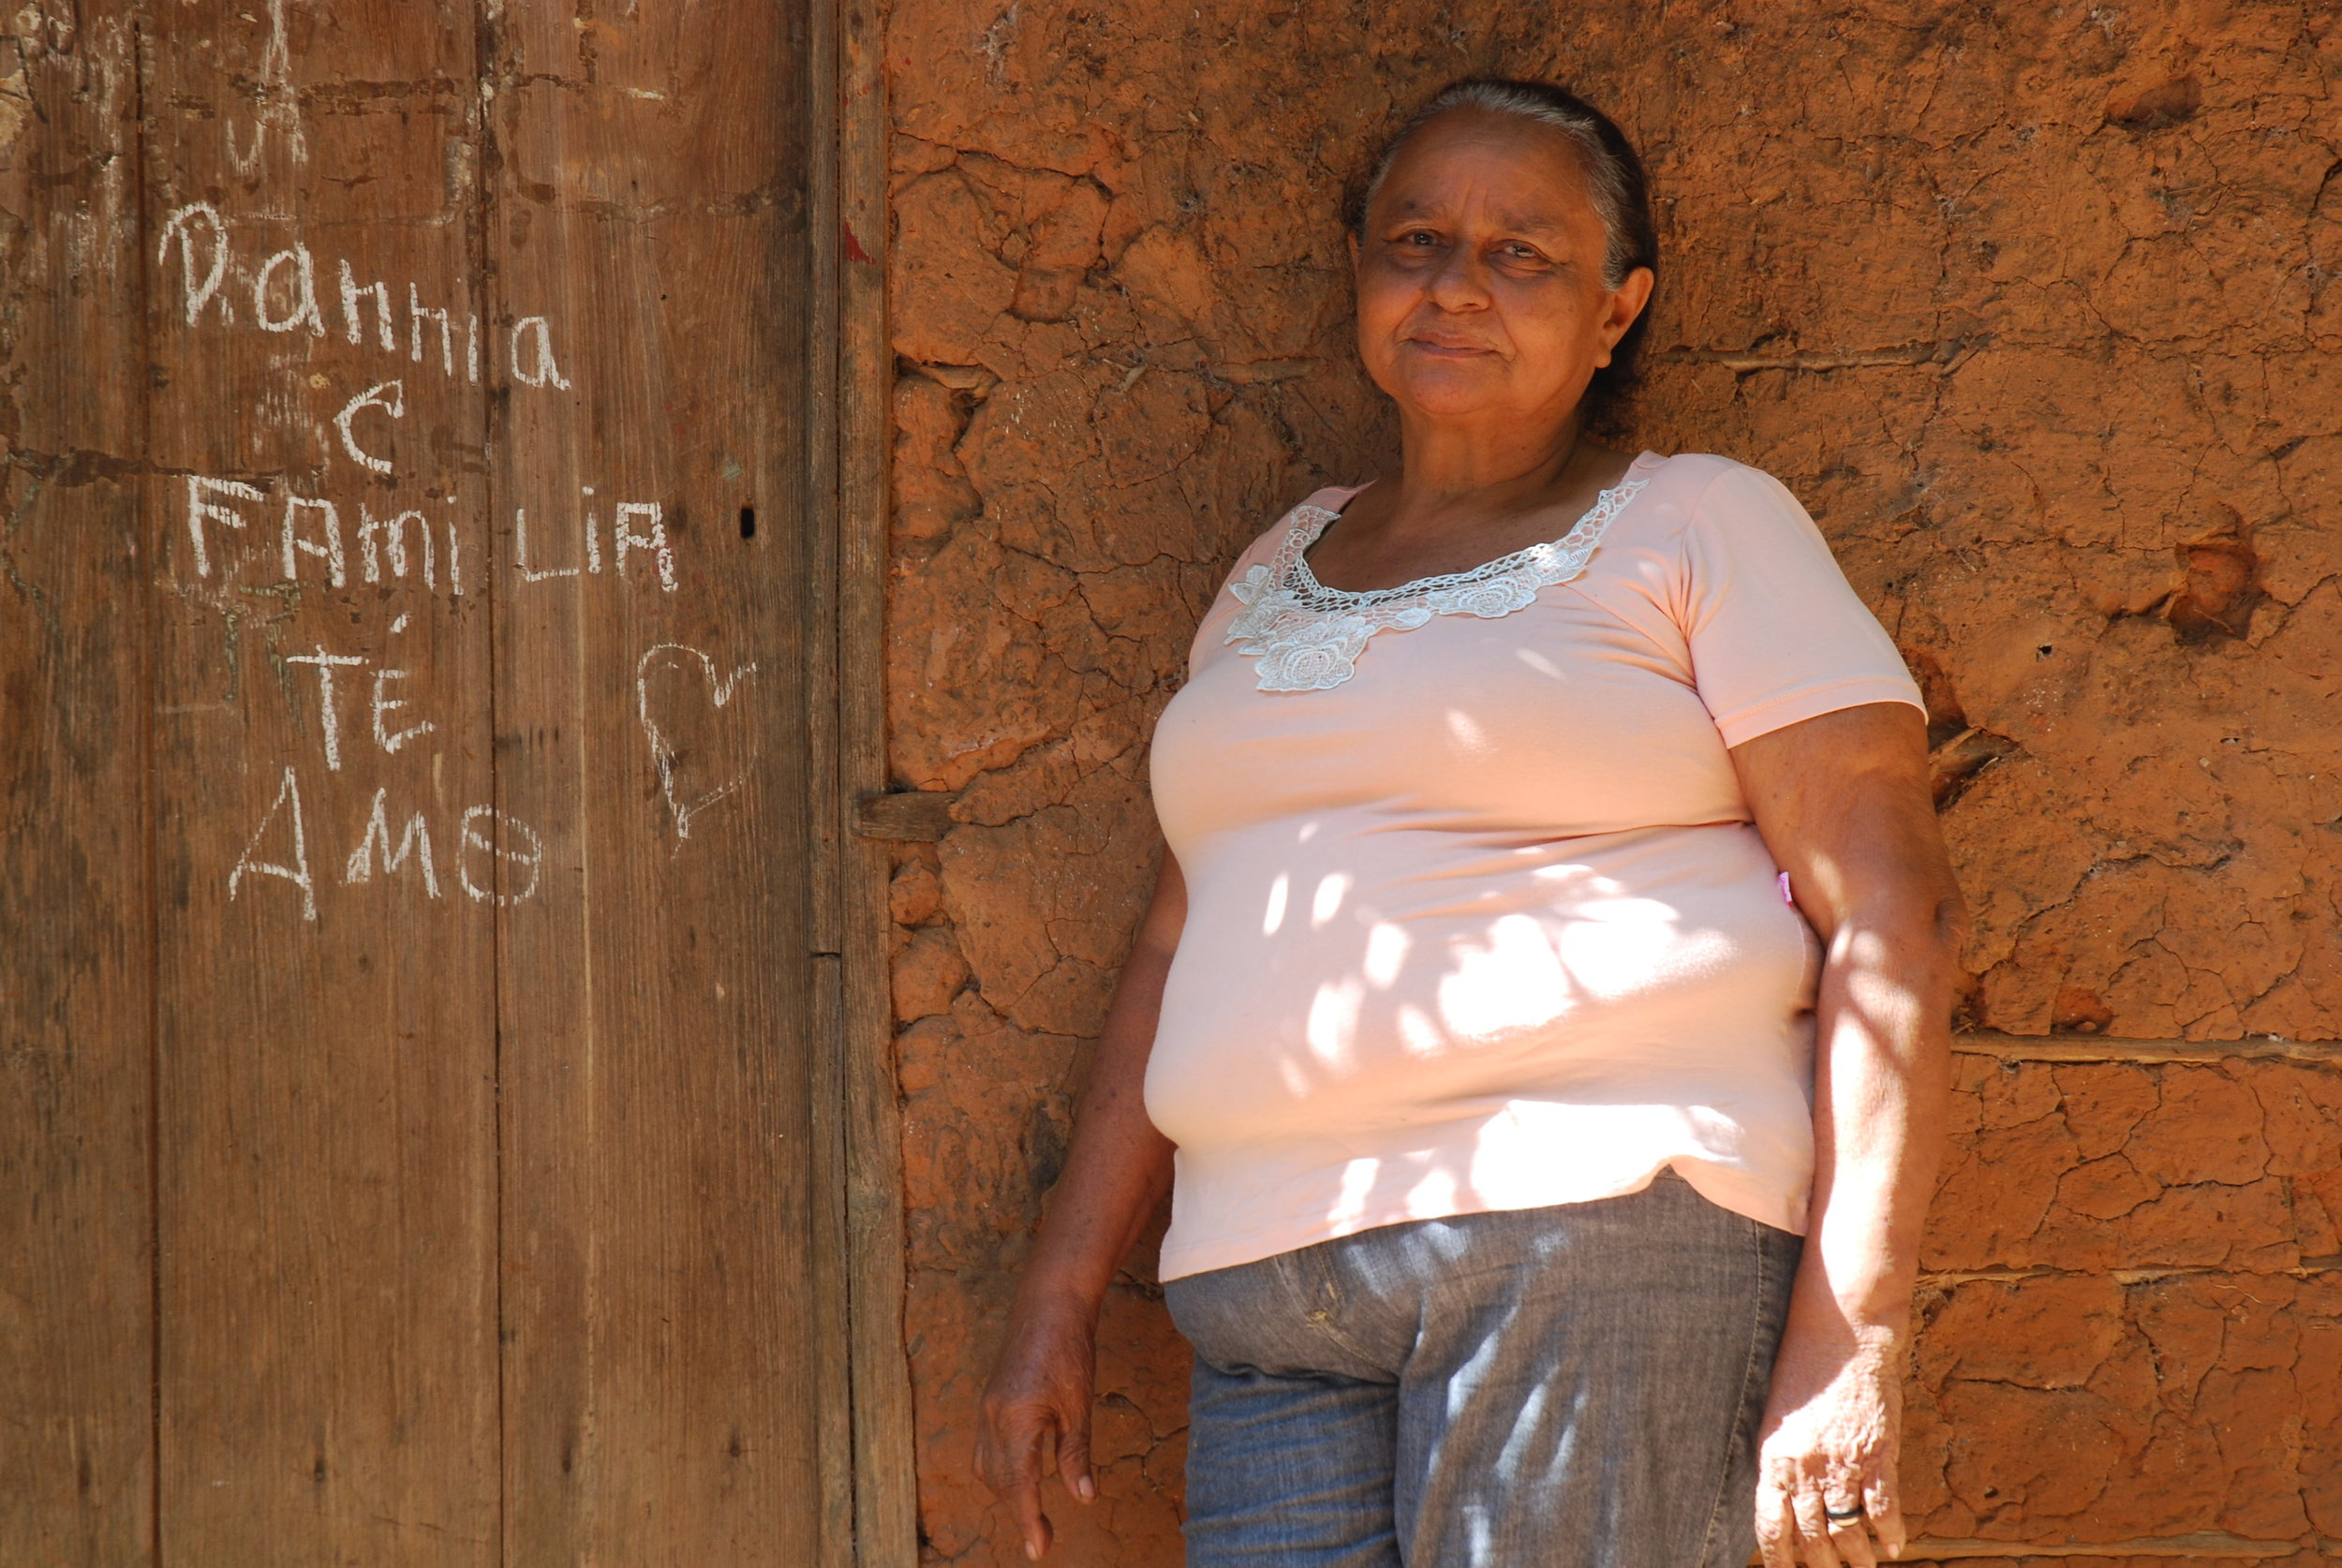 The Guardian - Meet the 'babassu breakers' on Brazil's 'new agricultural frontier'